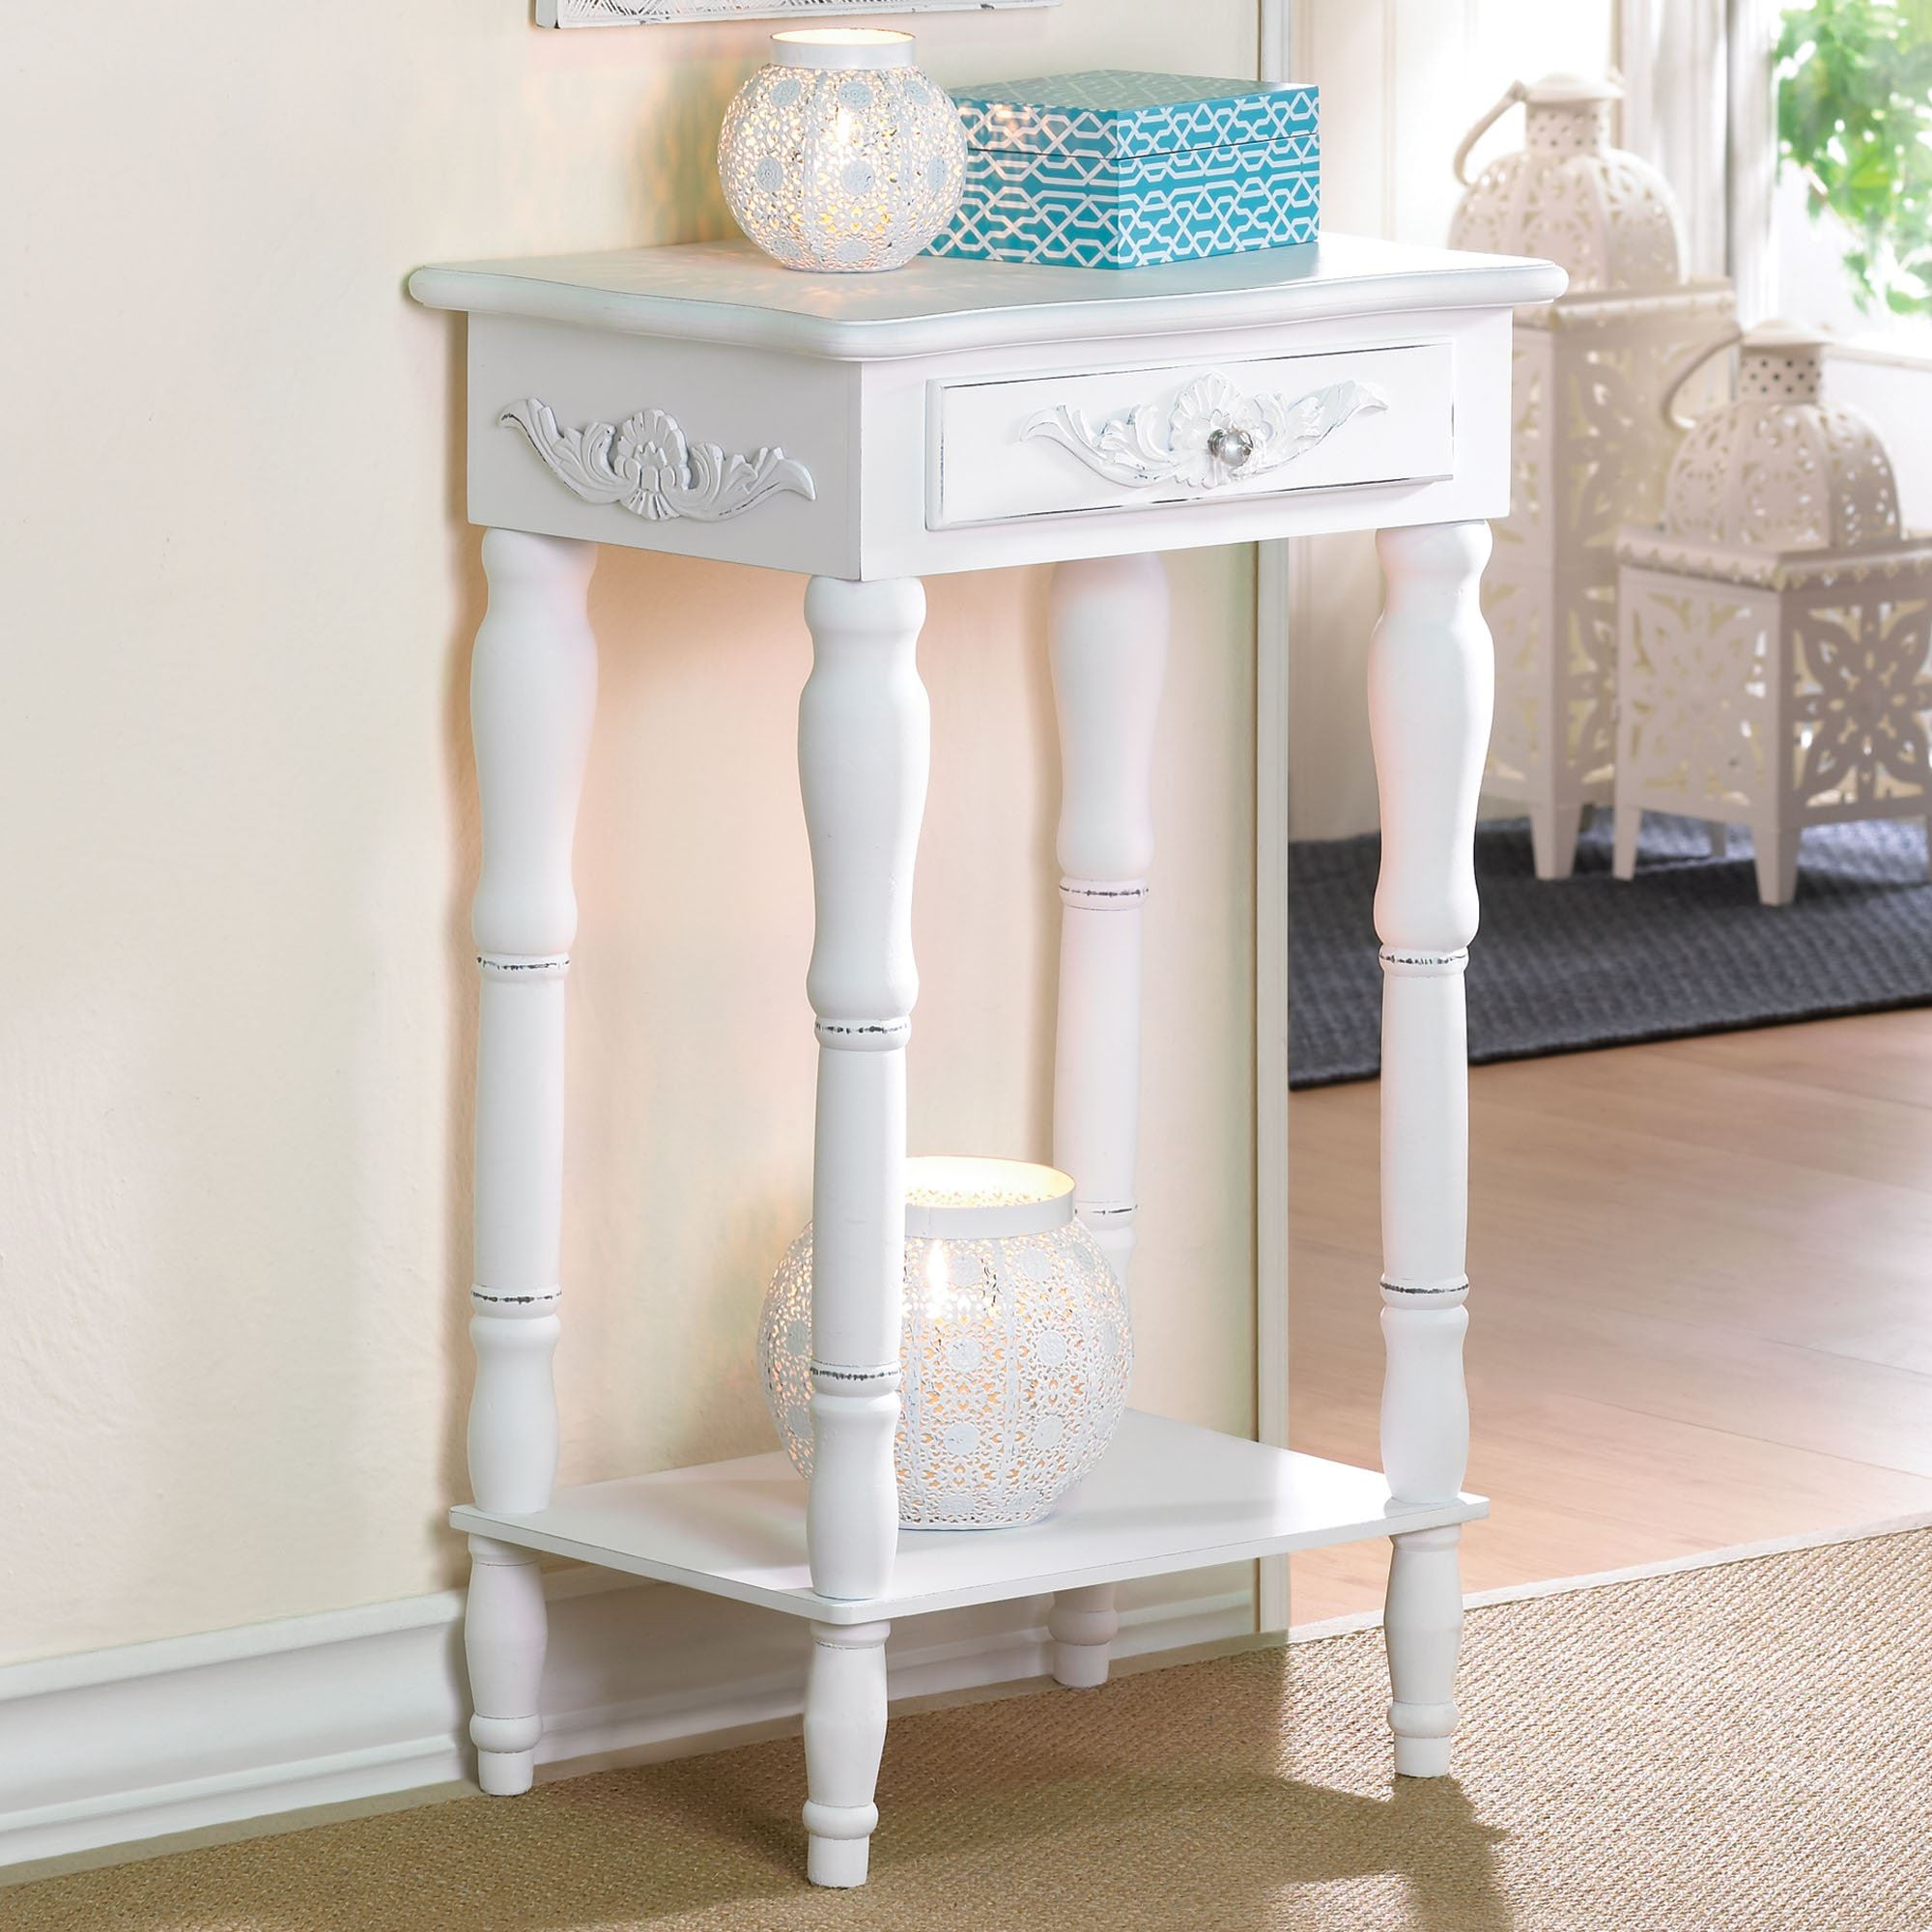 cosenza antique white accent table with drawer small tall you might also consider black rod iron end tables pottery barn decor home goods wall art acrylic and glass coffee mirage